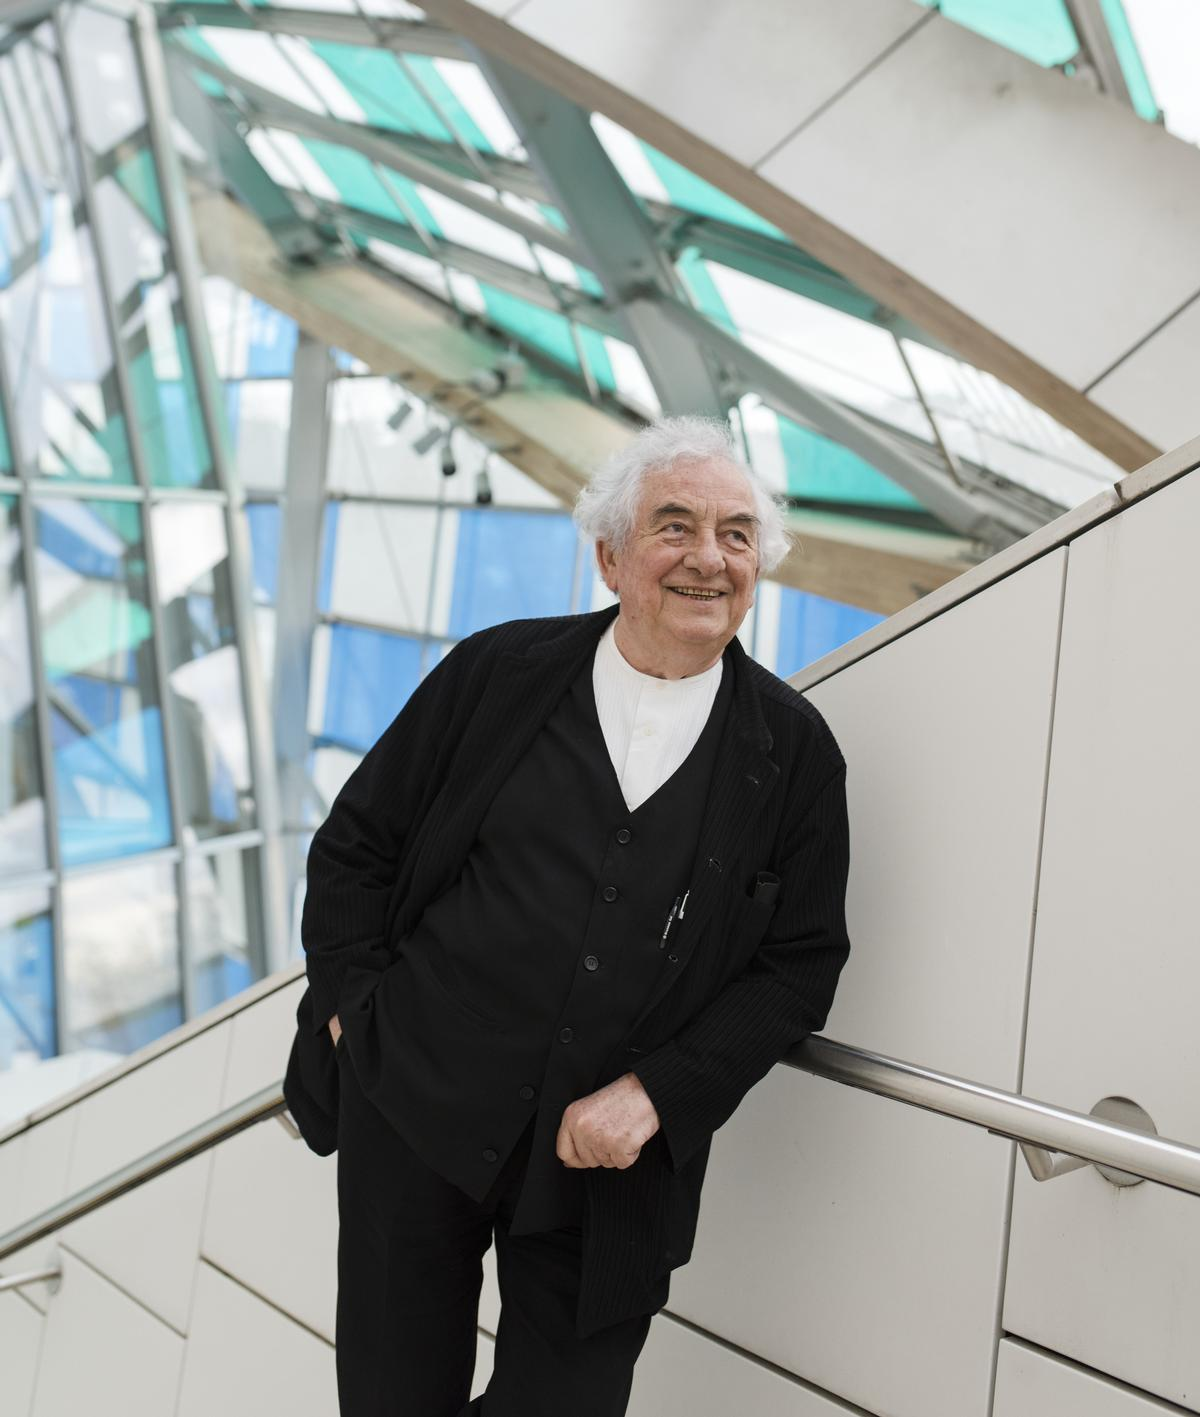 French conceptual artists Daniel Buren often explores colour and mirrors in his work / Fondation Louis Vuitton